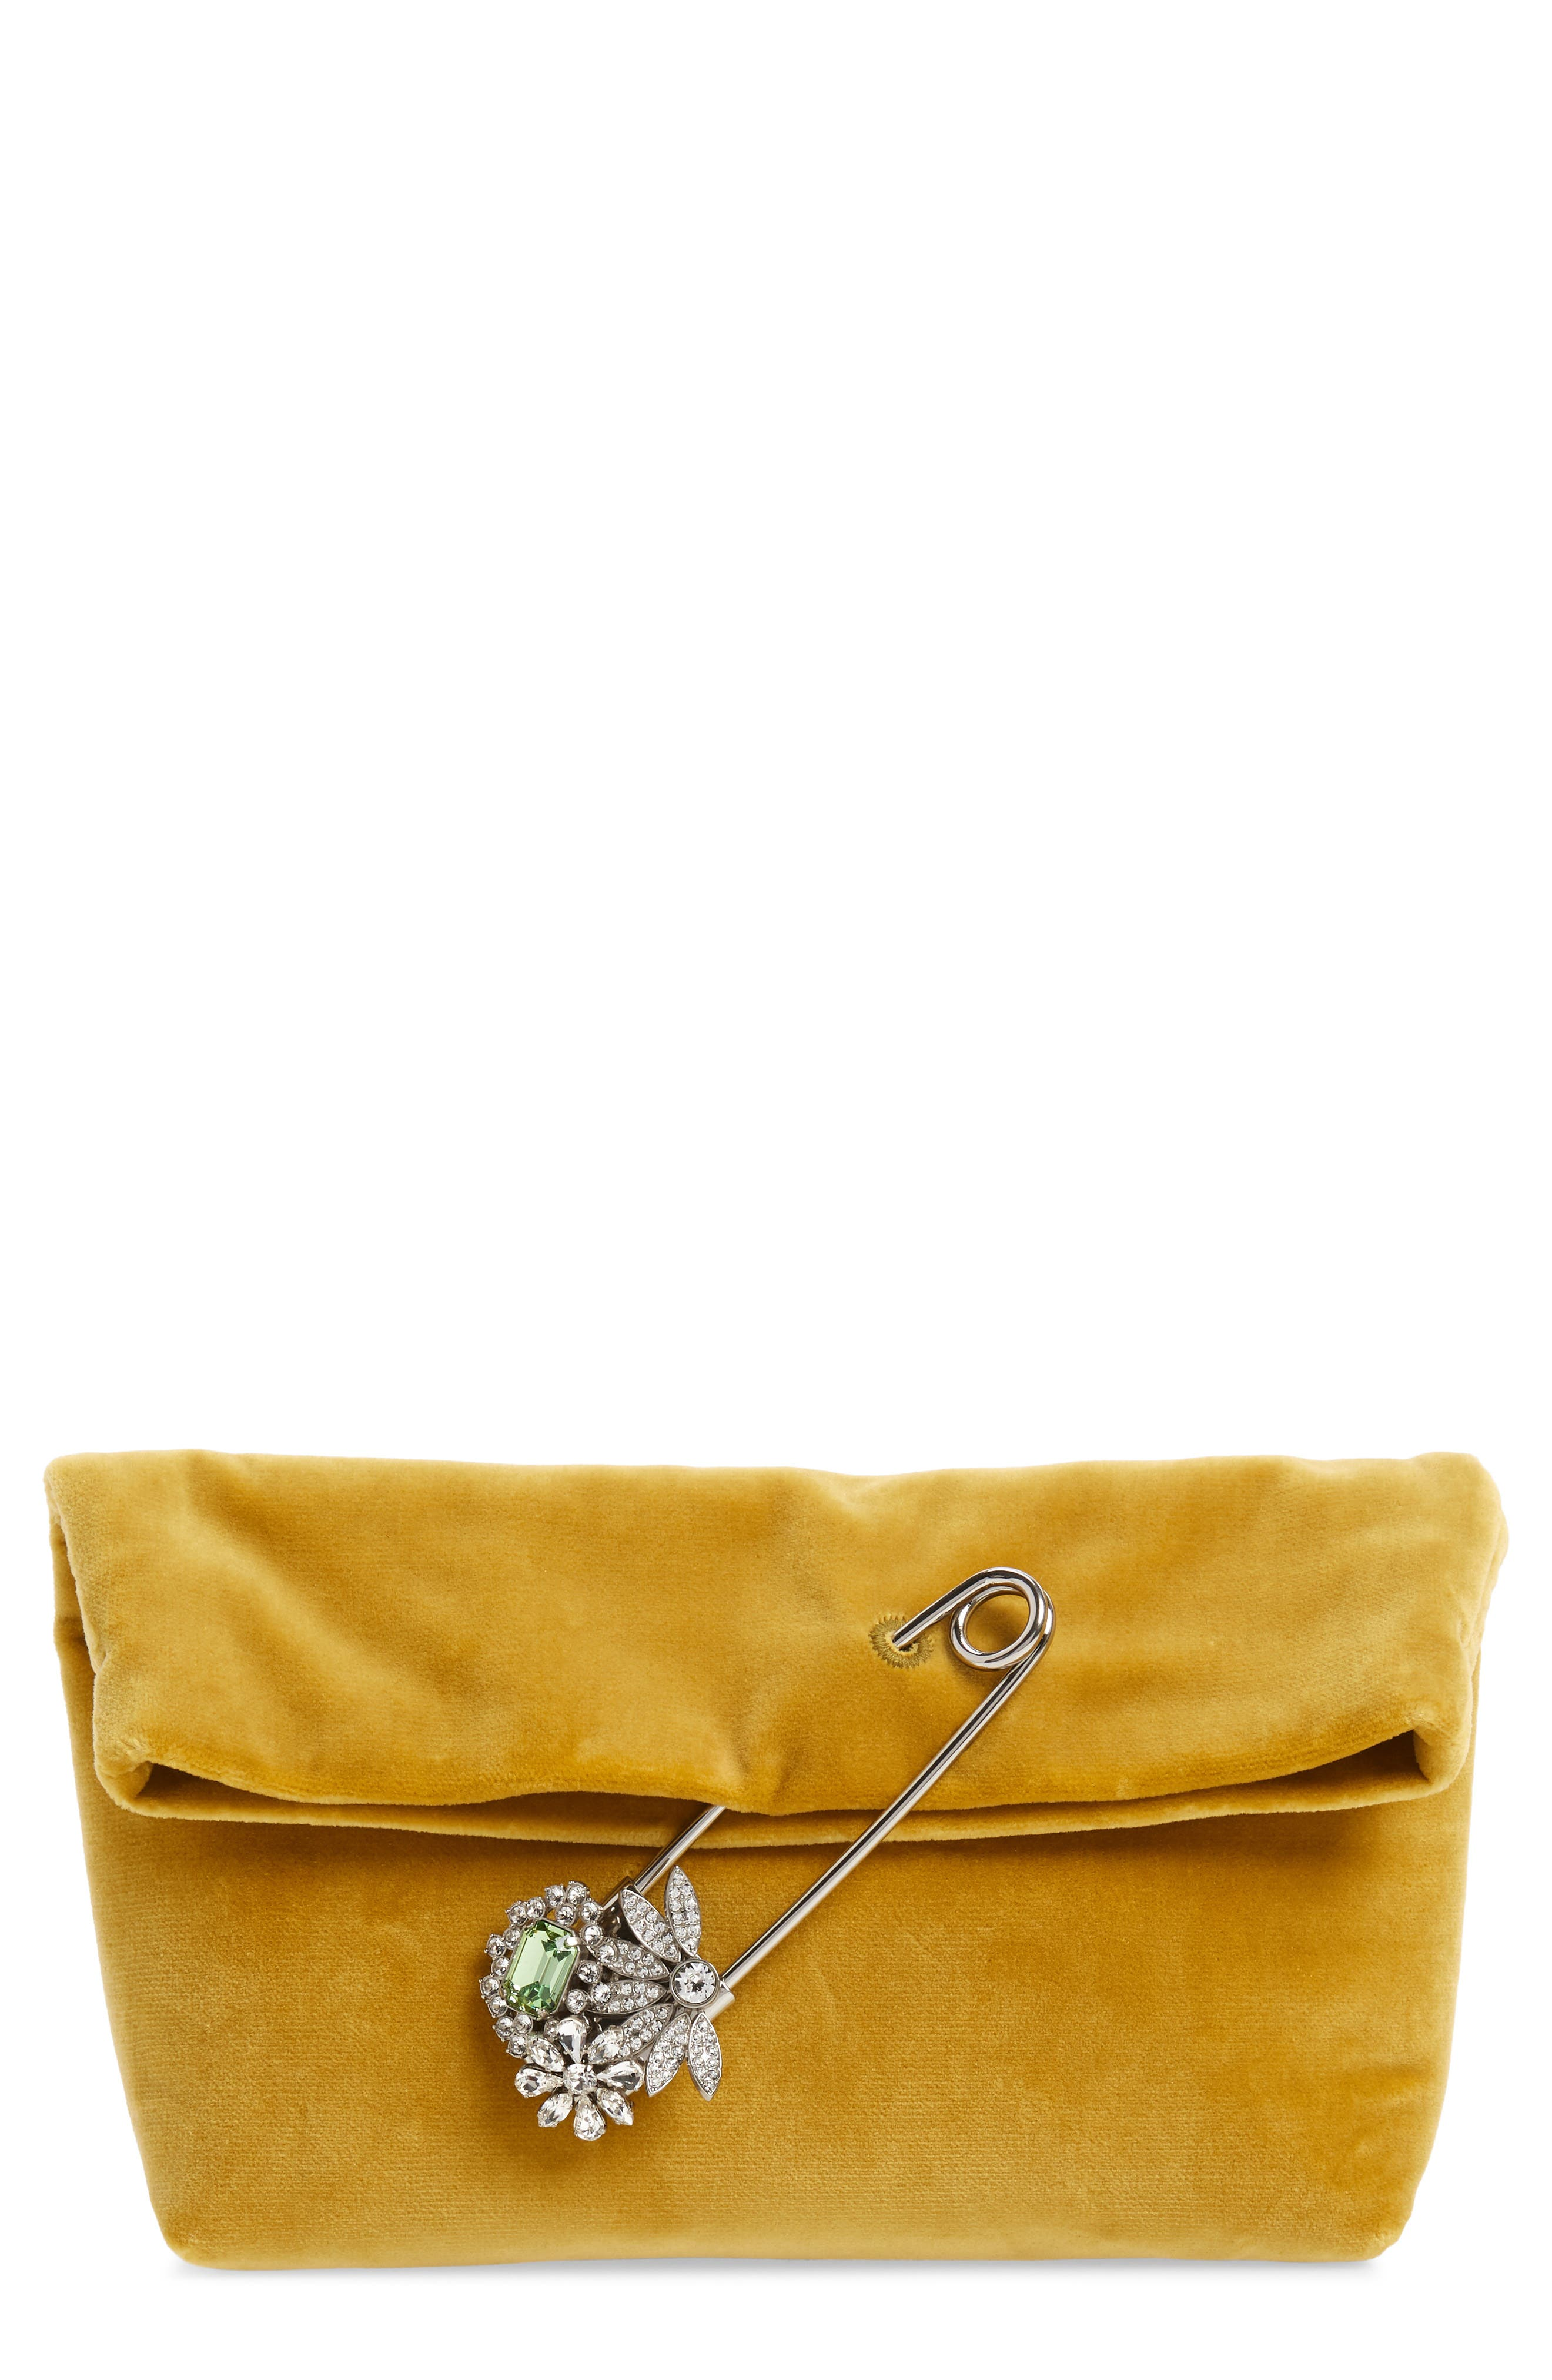 Burberry Small Safety Pin Clutch